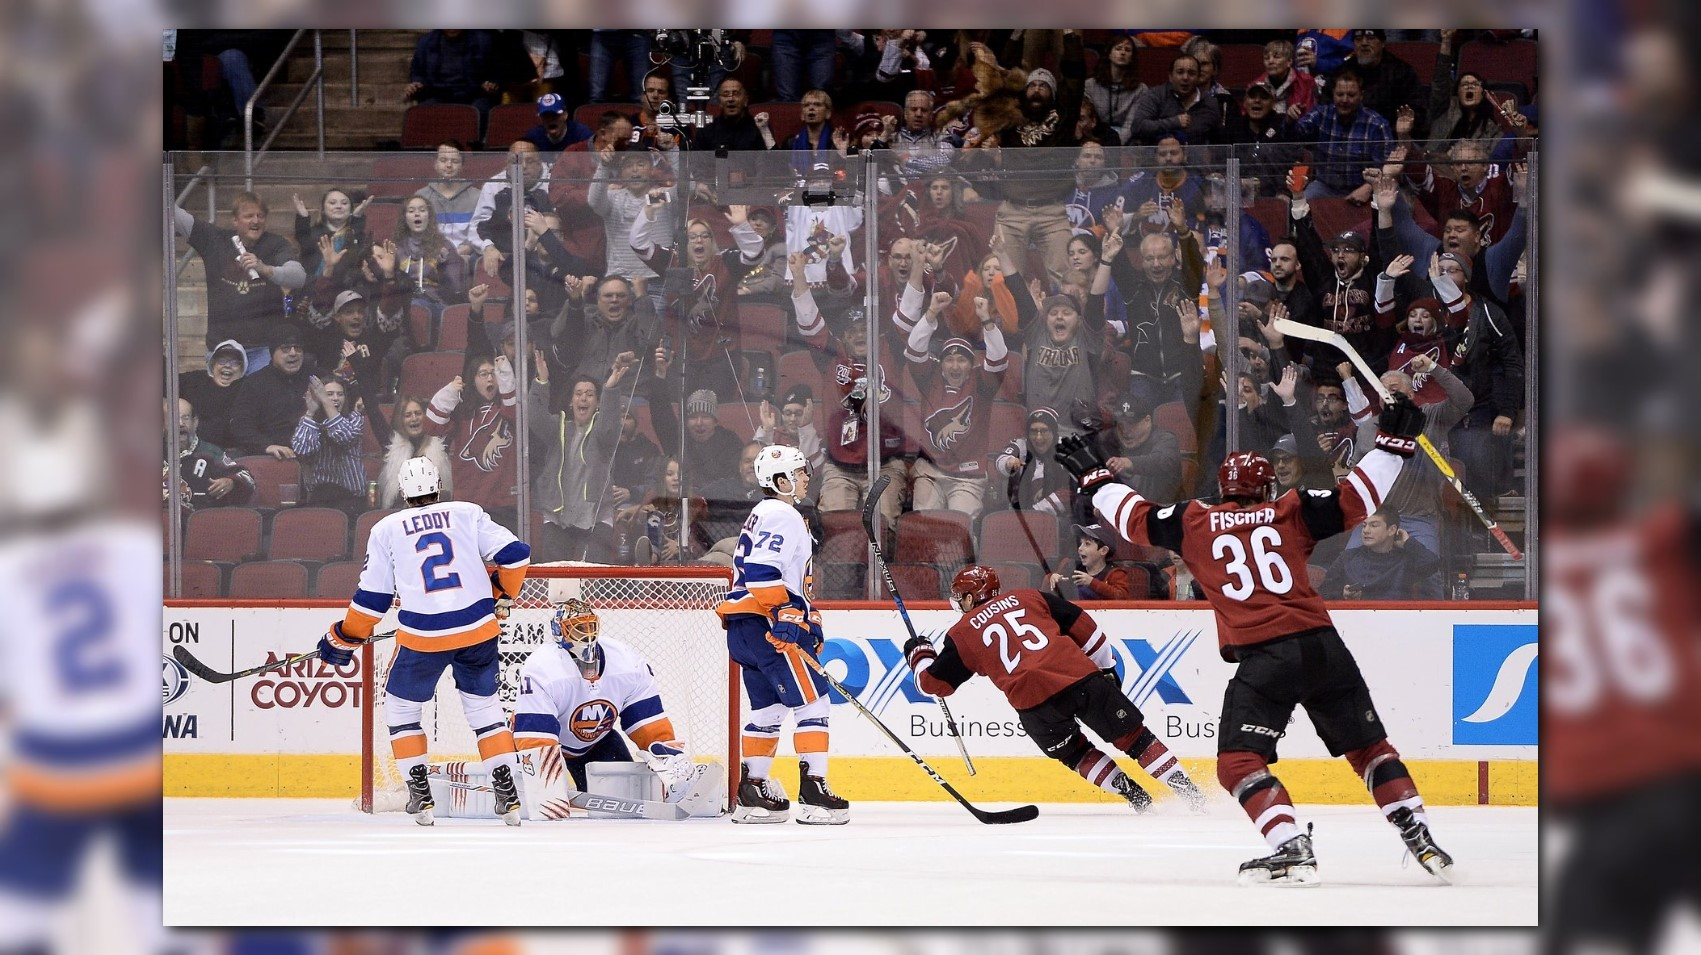 Coyotes beat Islanders with overtime winner by Cousins